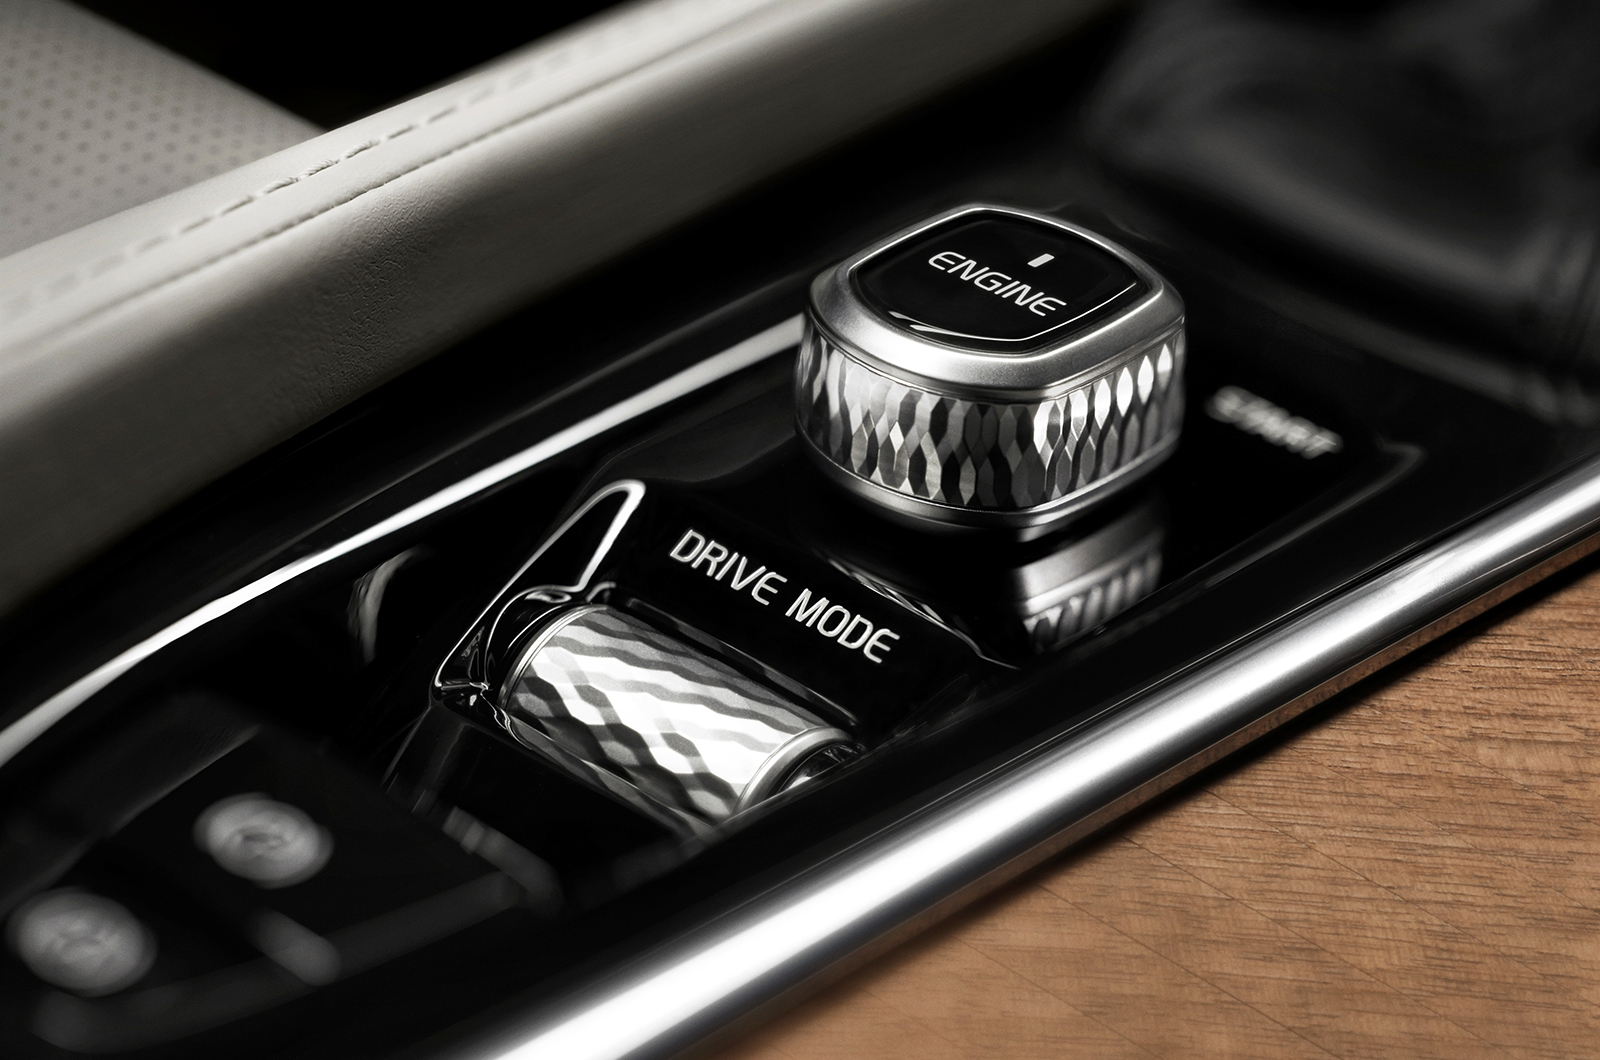 Volvo XC90 engine start / stop button and drive mode selector